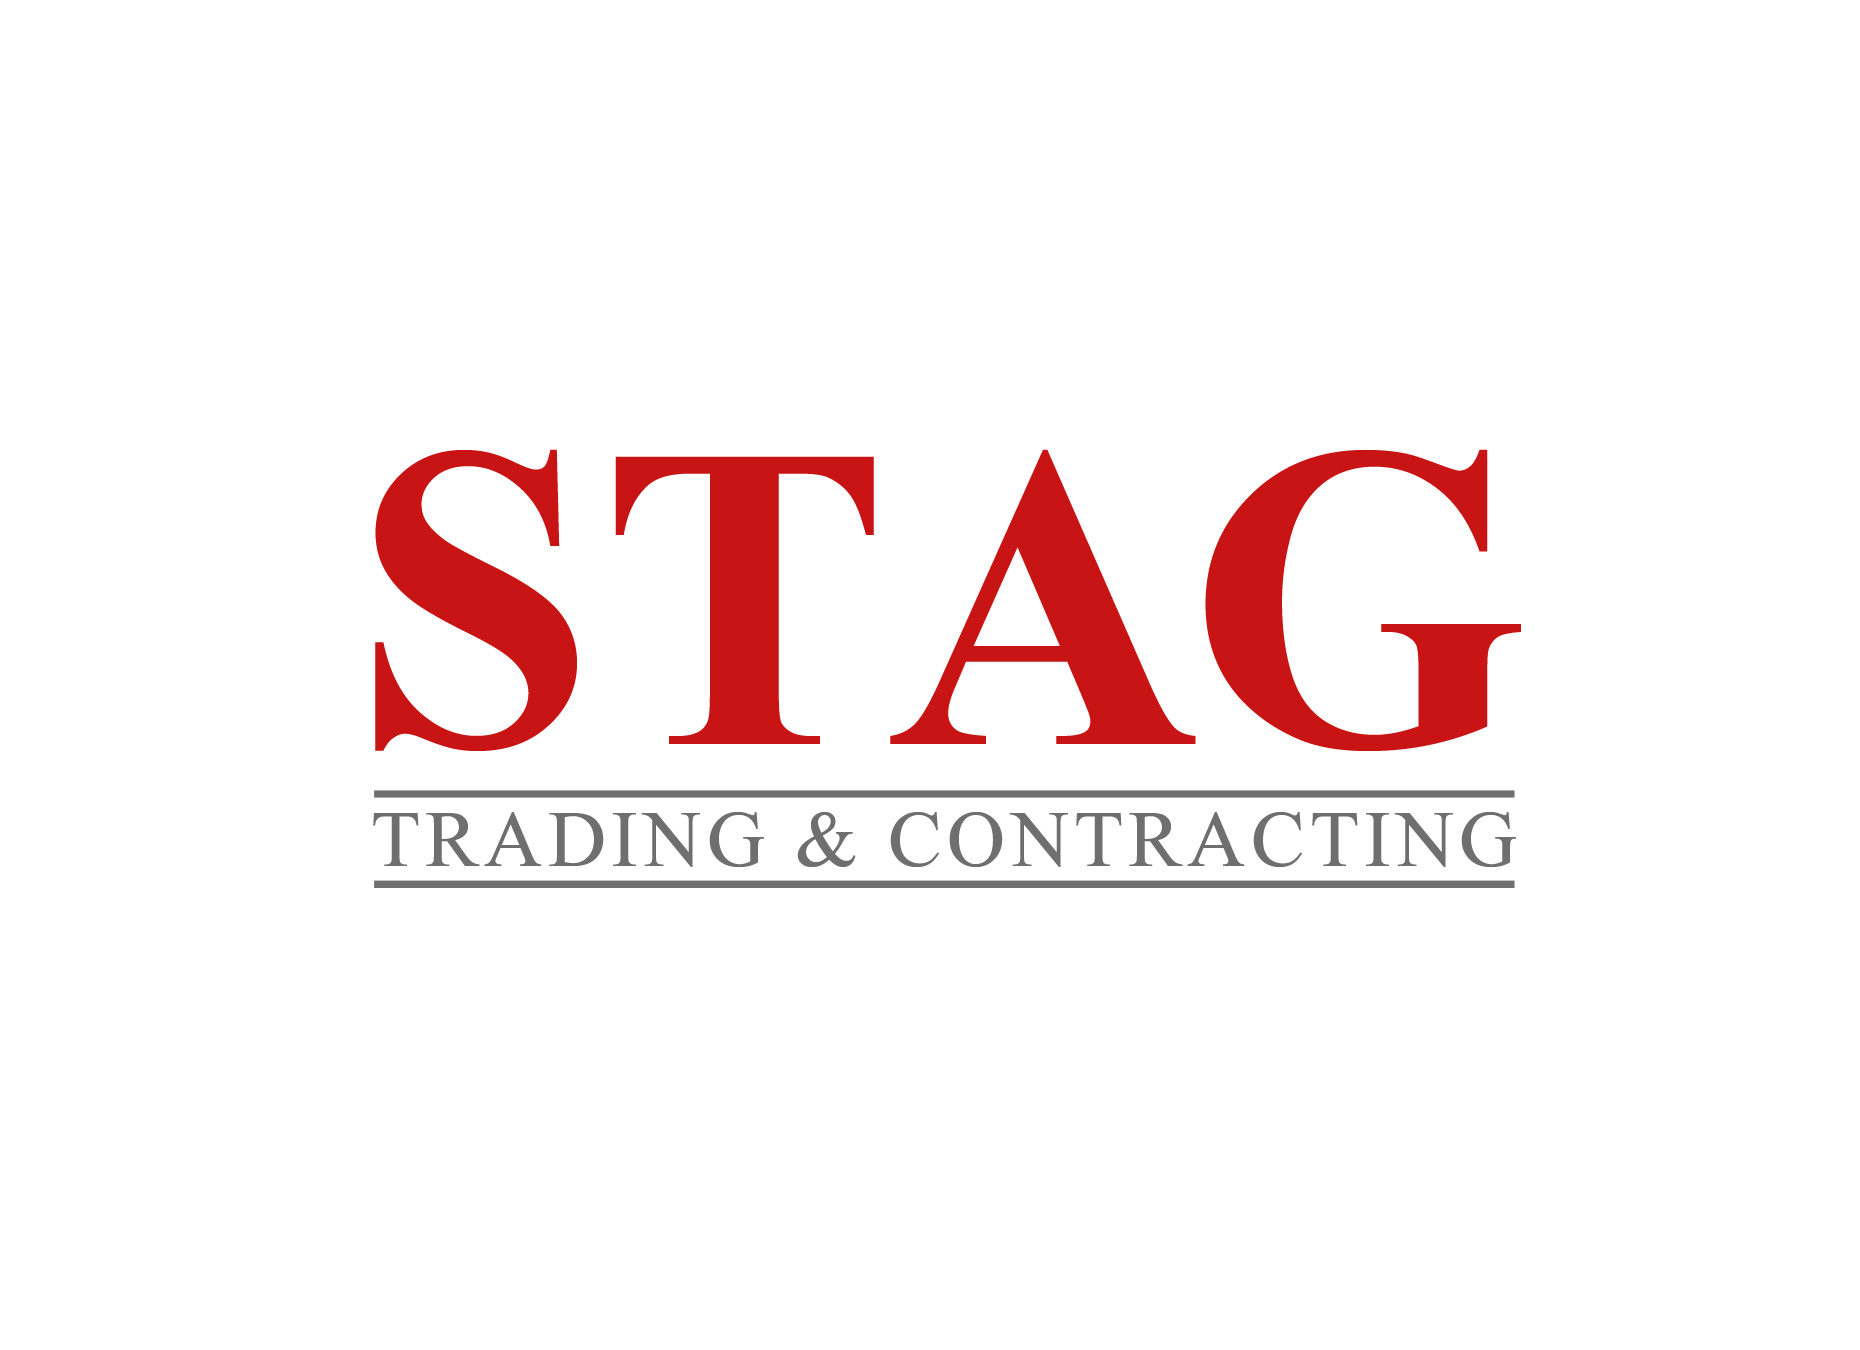 Logo Design by omARTist - Entry No. 59 in the Logo Design Contest Captivating Logo Design for STAG Trading & Contracting.